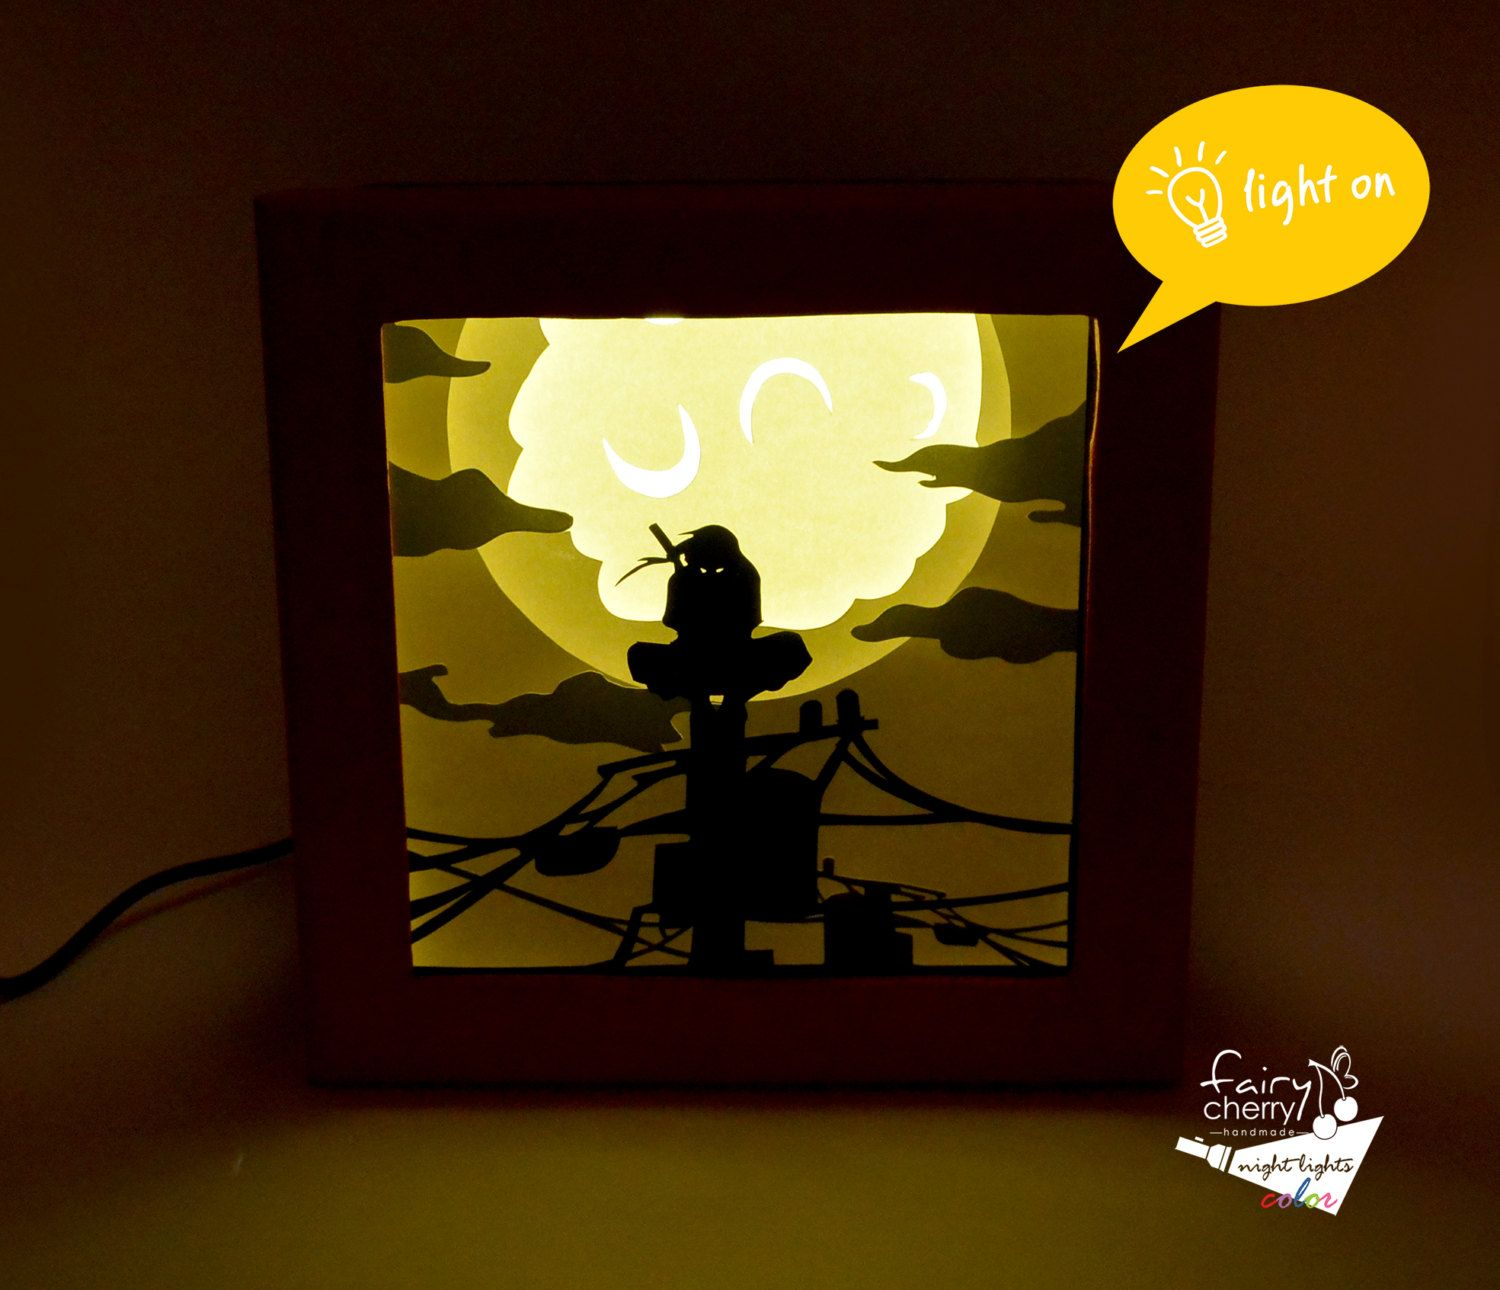 Itachi Night Light Anime Night Light Anime Gift Geek Night Light Naruto Home Decor Naruto Gift Anime Birthday Gift Naru Anime Gifts Geek Gifts Diy Anime